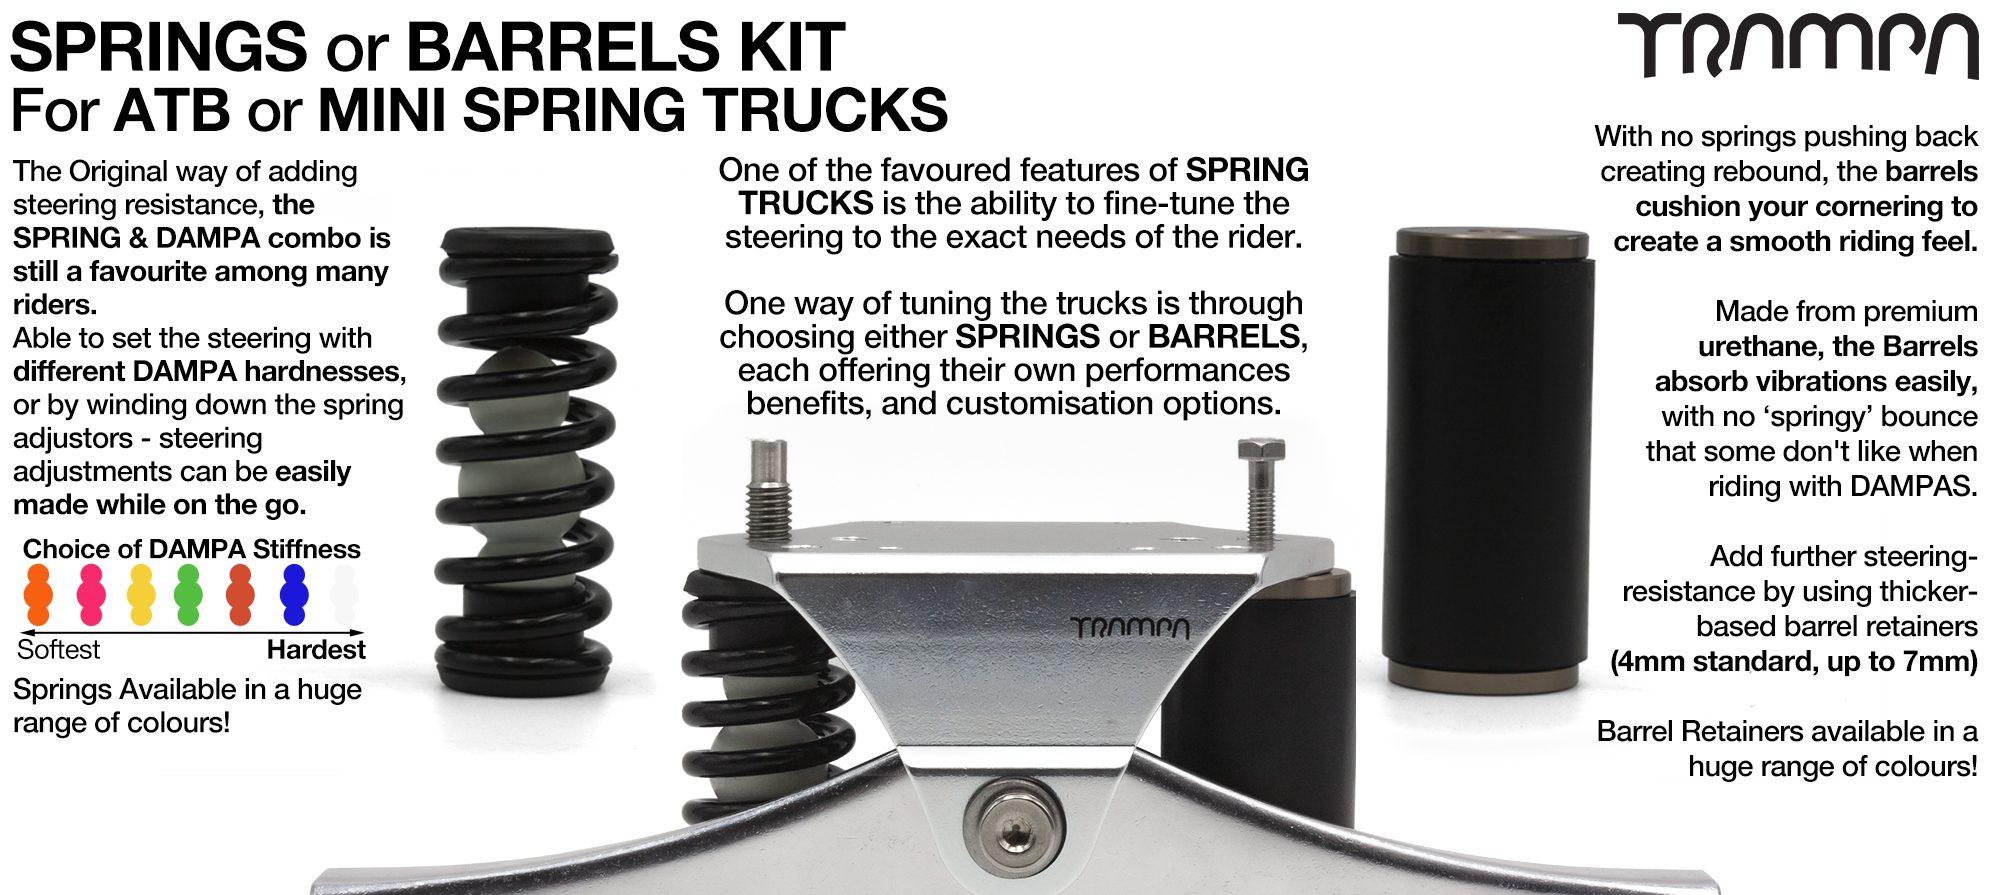 Complete Spring or Barrel kit for 1x Truck